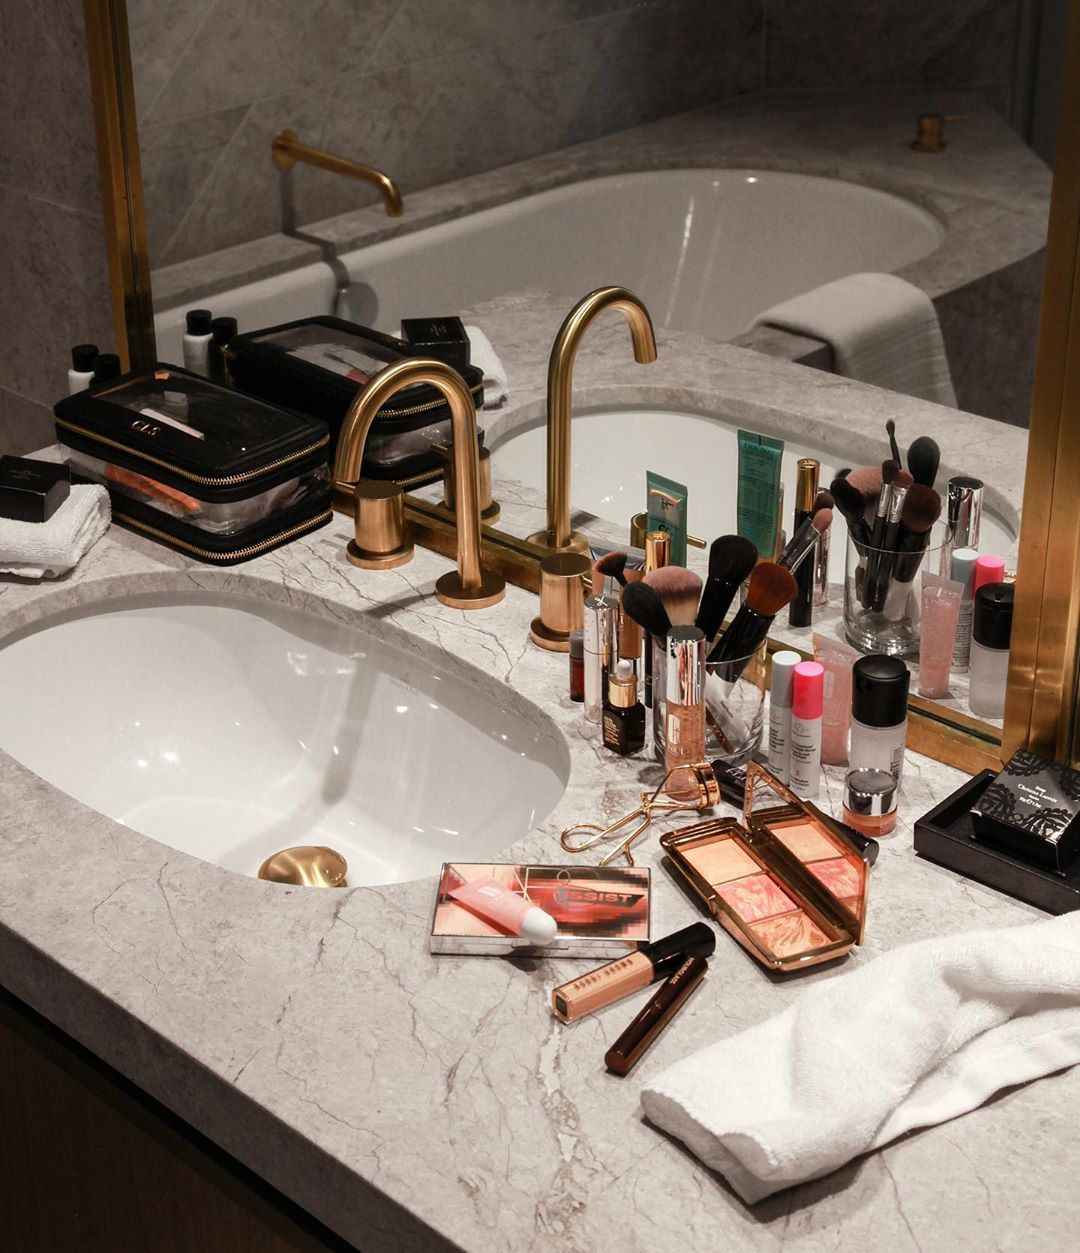 "CARISSA SMART on Instagram: ""Bathroom goals at @fssydney including all the makeup and skincare essentials for any beauty addict!� (I've reposted all my travel…"""